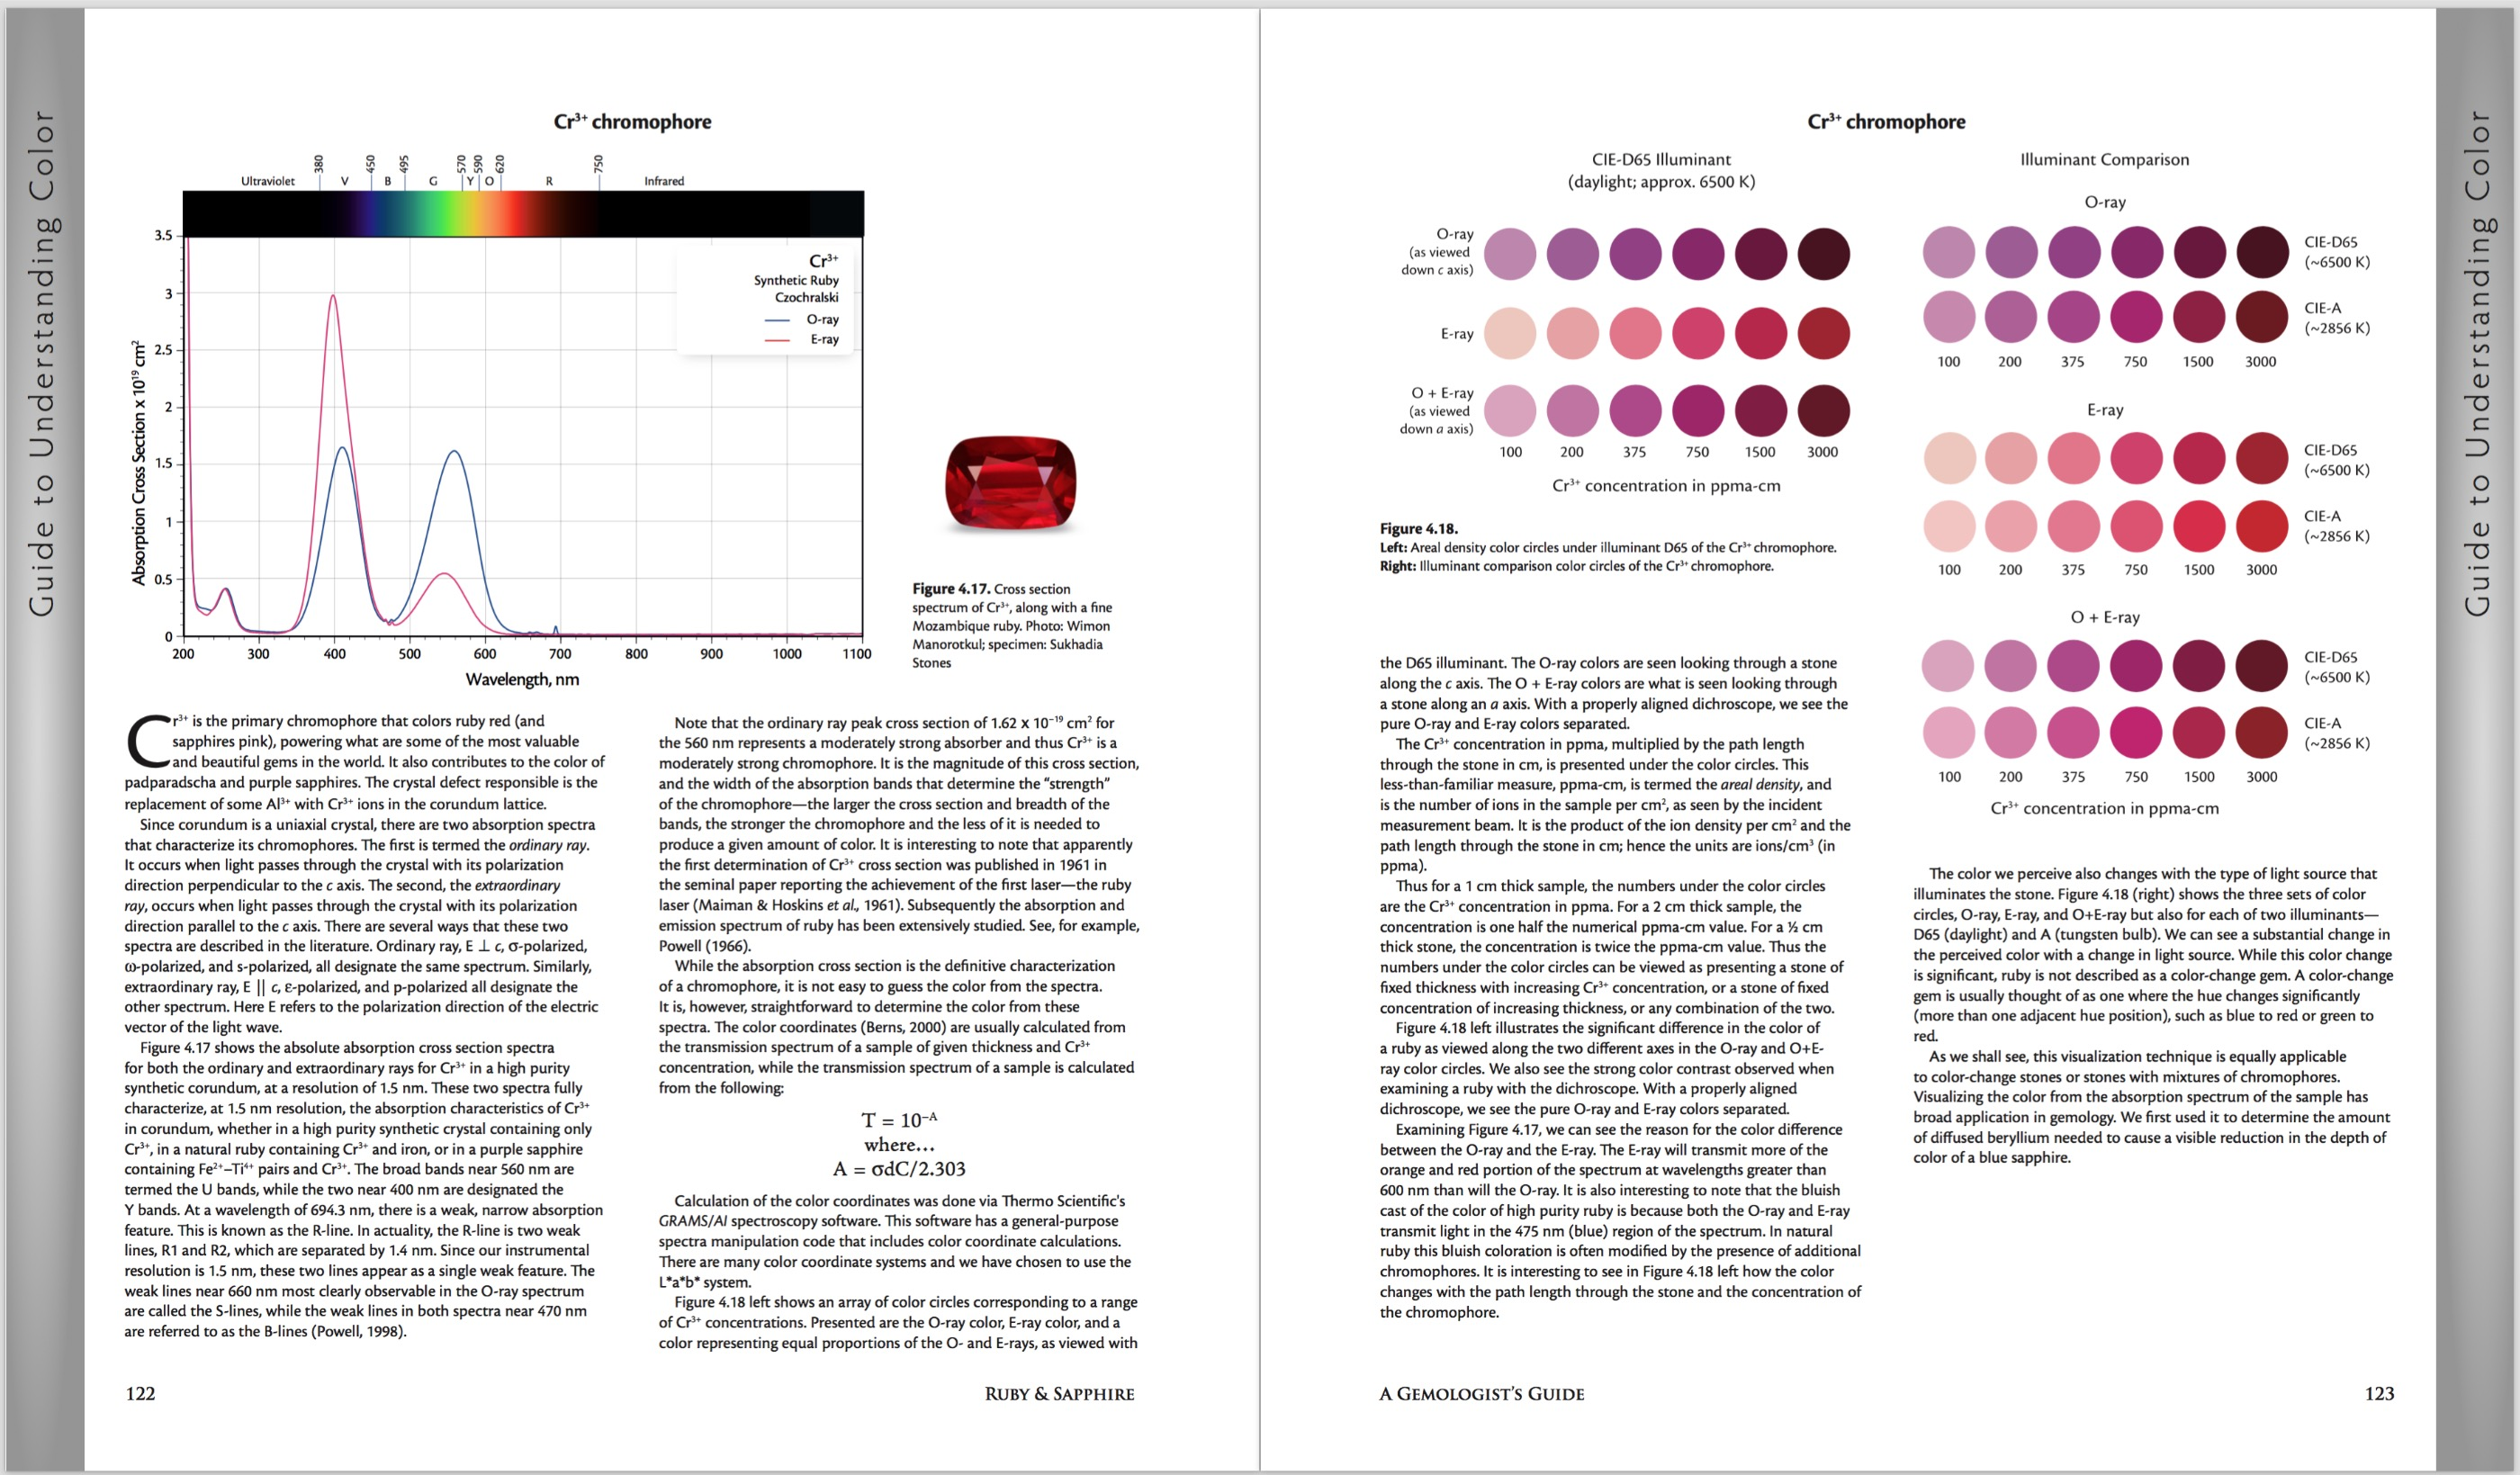 Ruby & Sapphire: A Gemologist's Guide – Color, Spectra & Luminescence